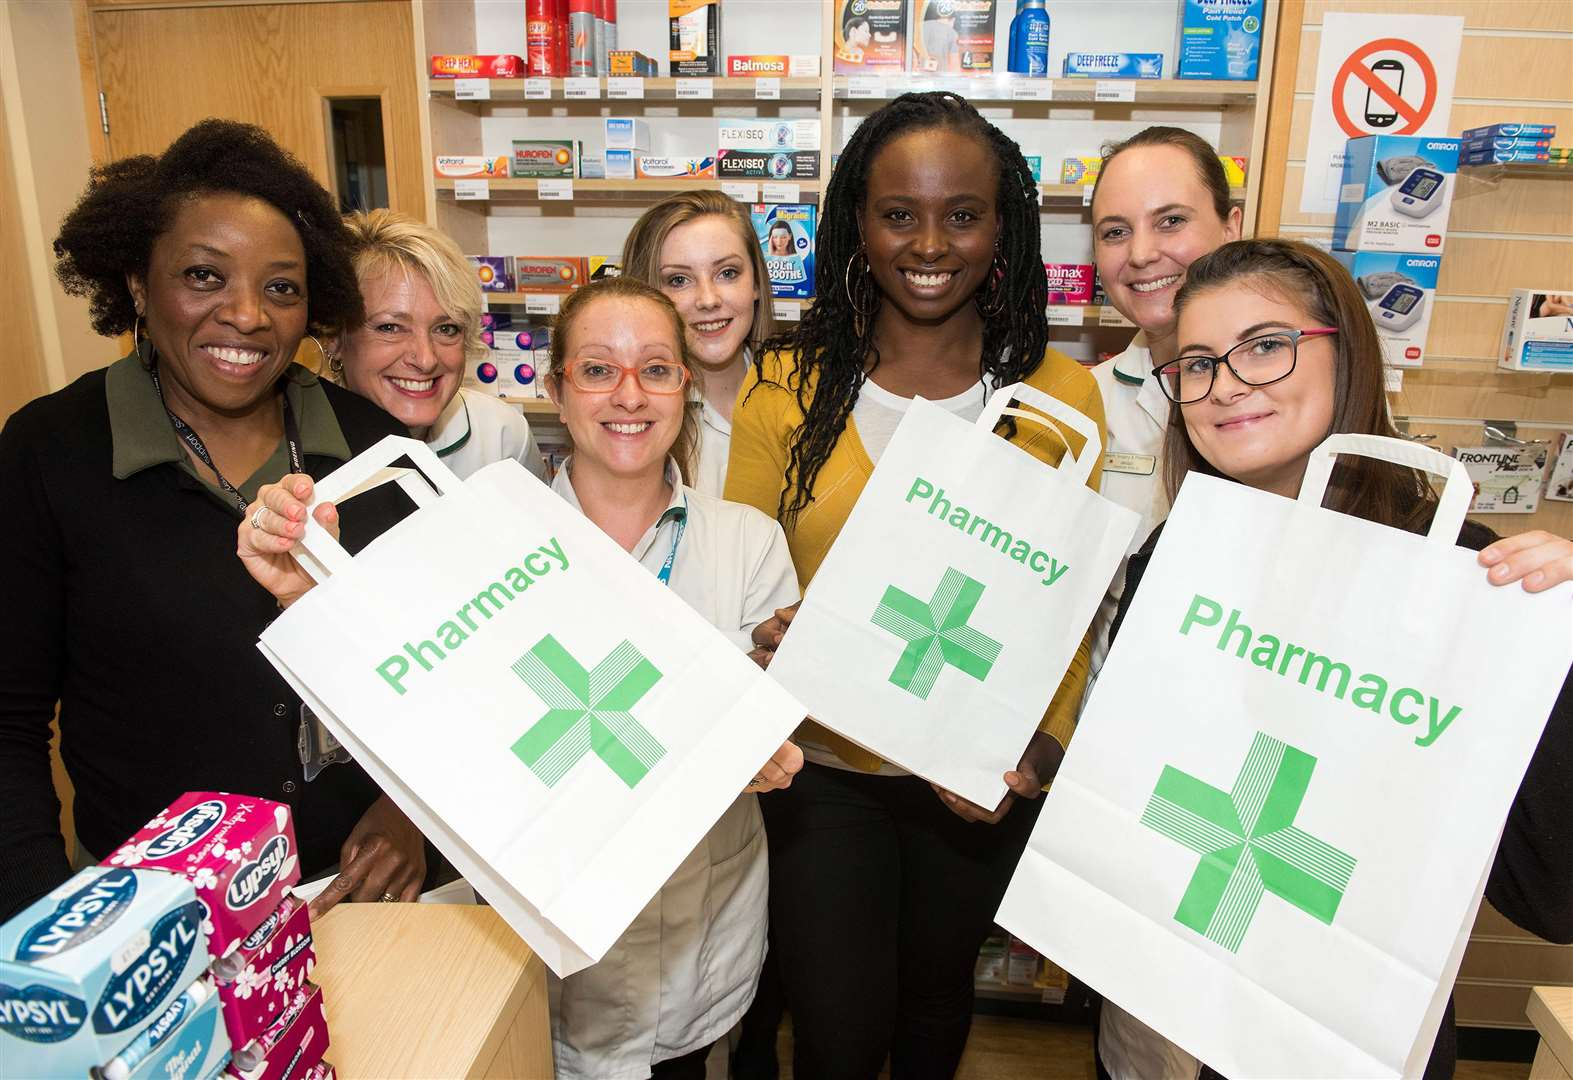 Pharmacy commits to reducing plastic waste